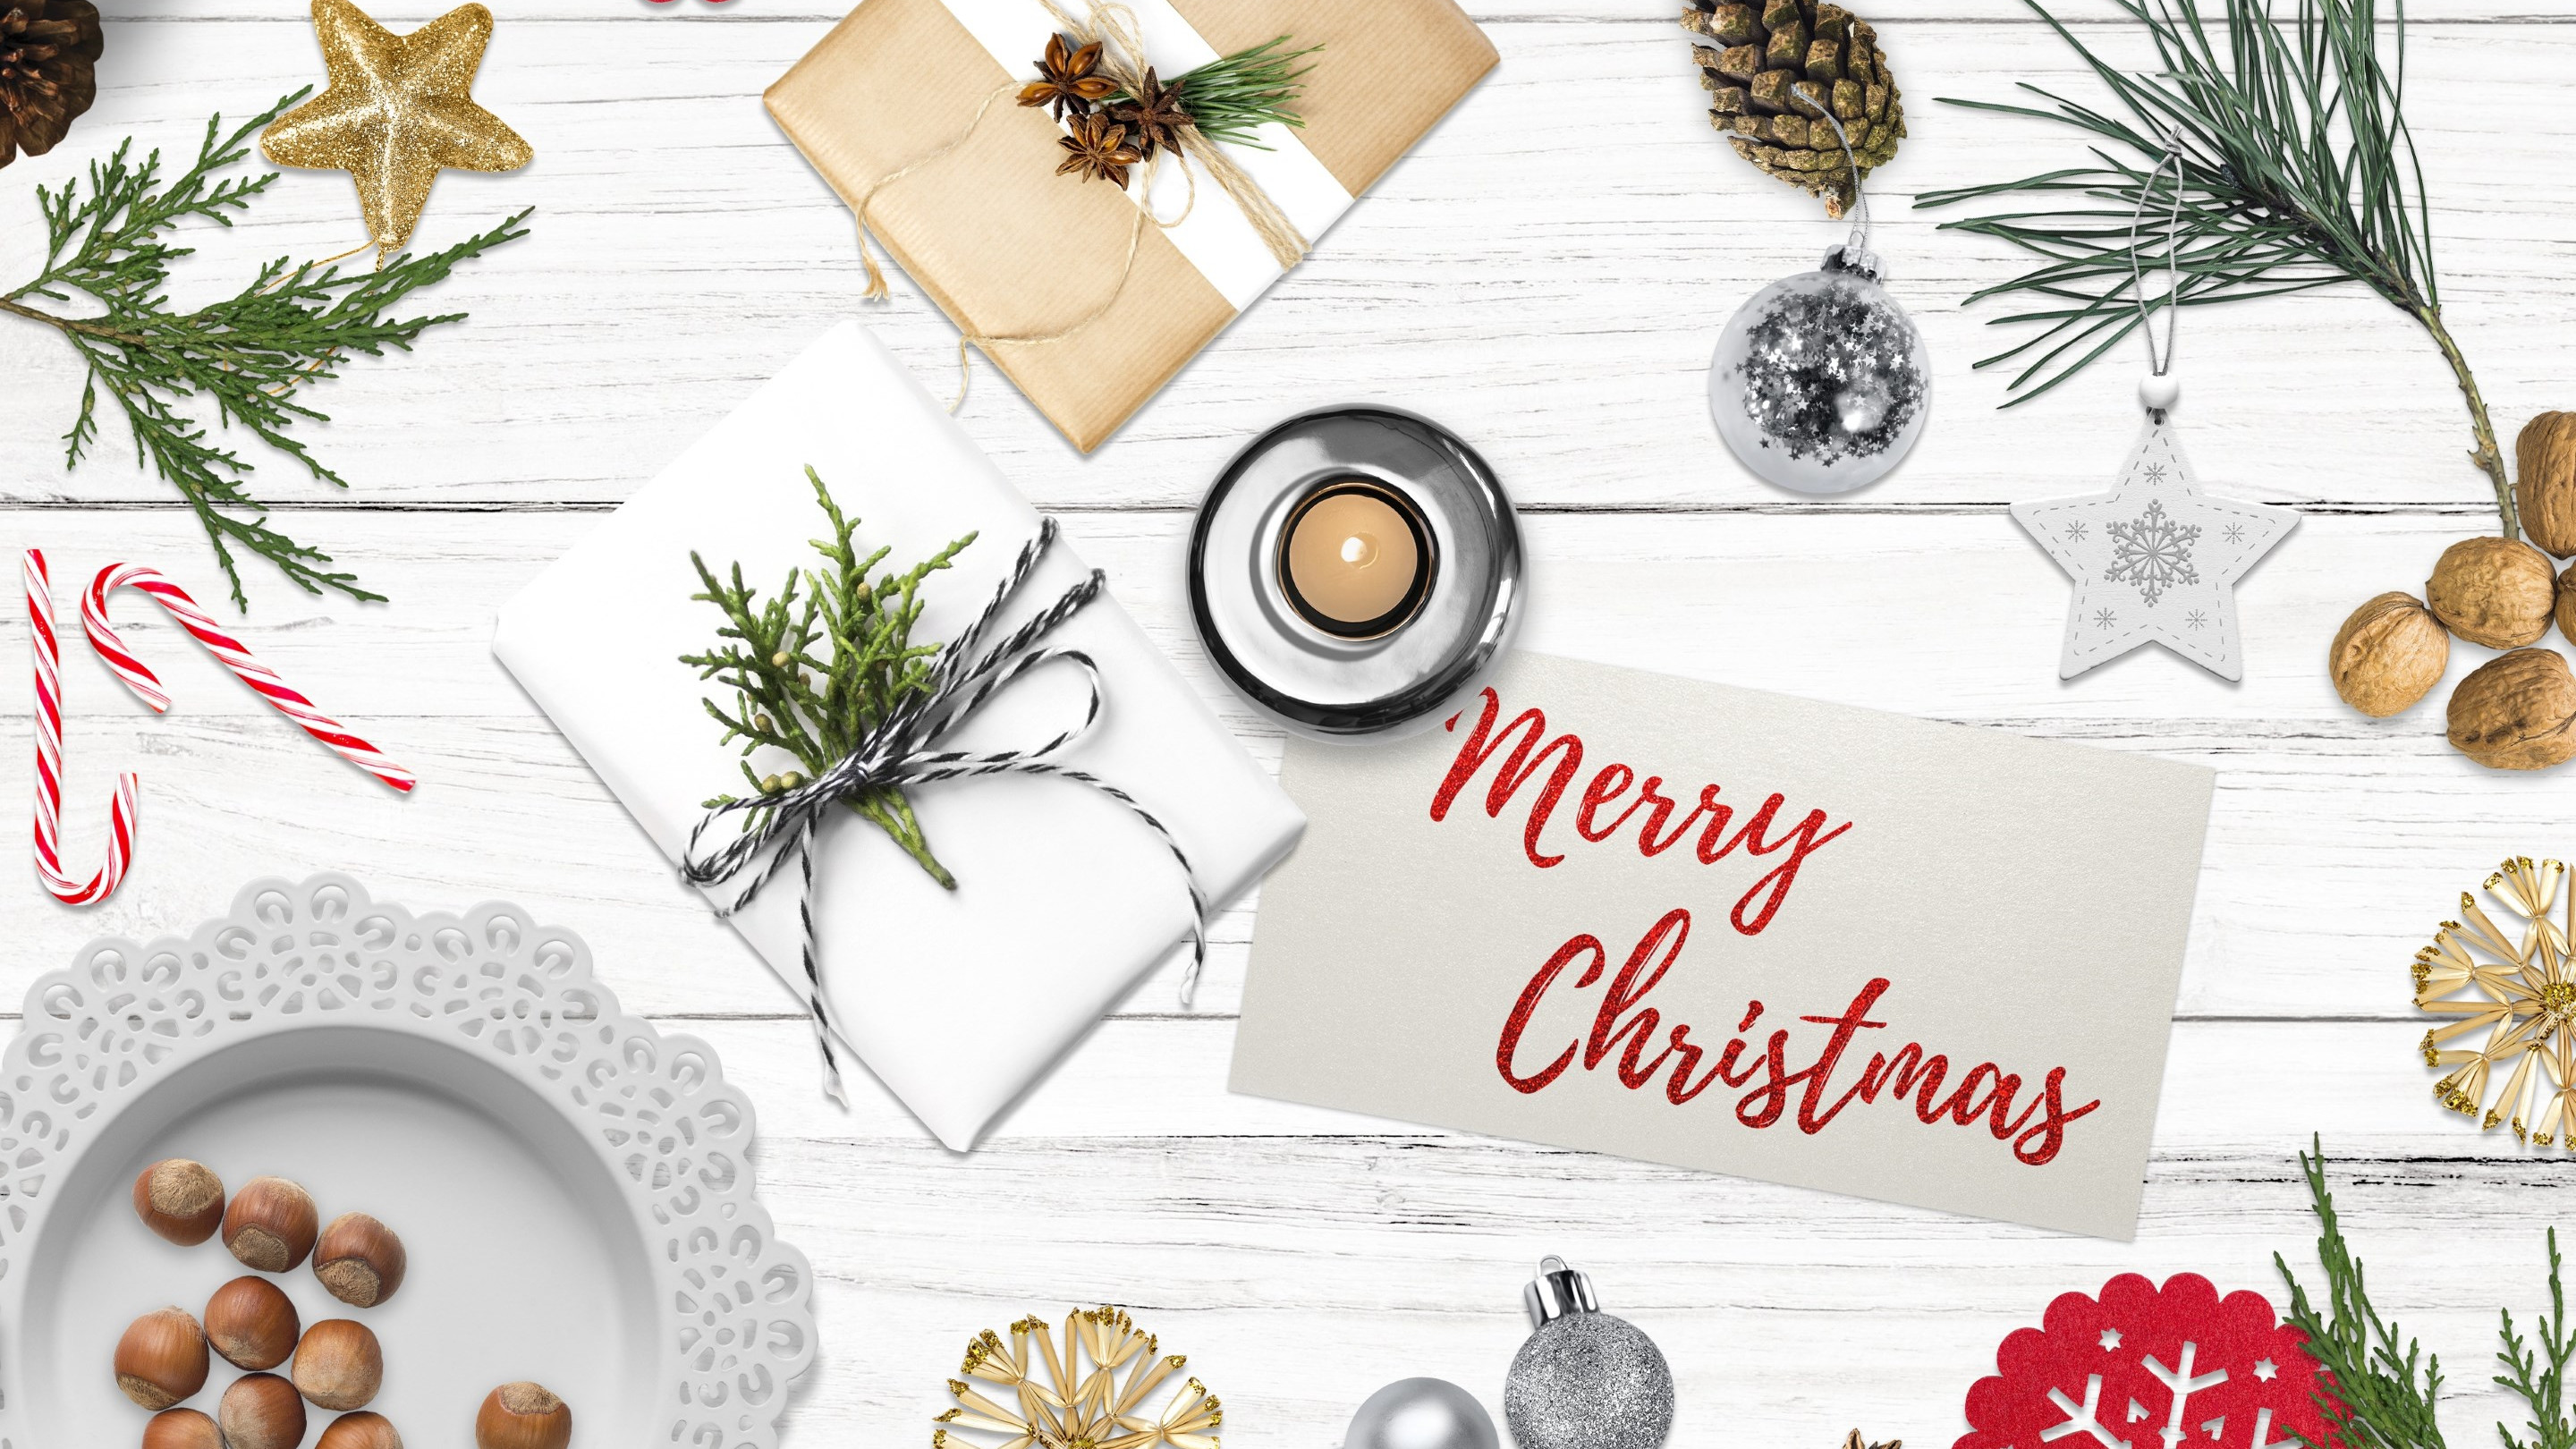 Merry Christmas 2019 | 2880x1620 wallpaper